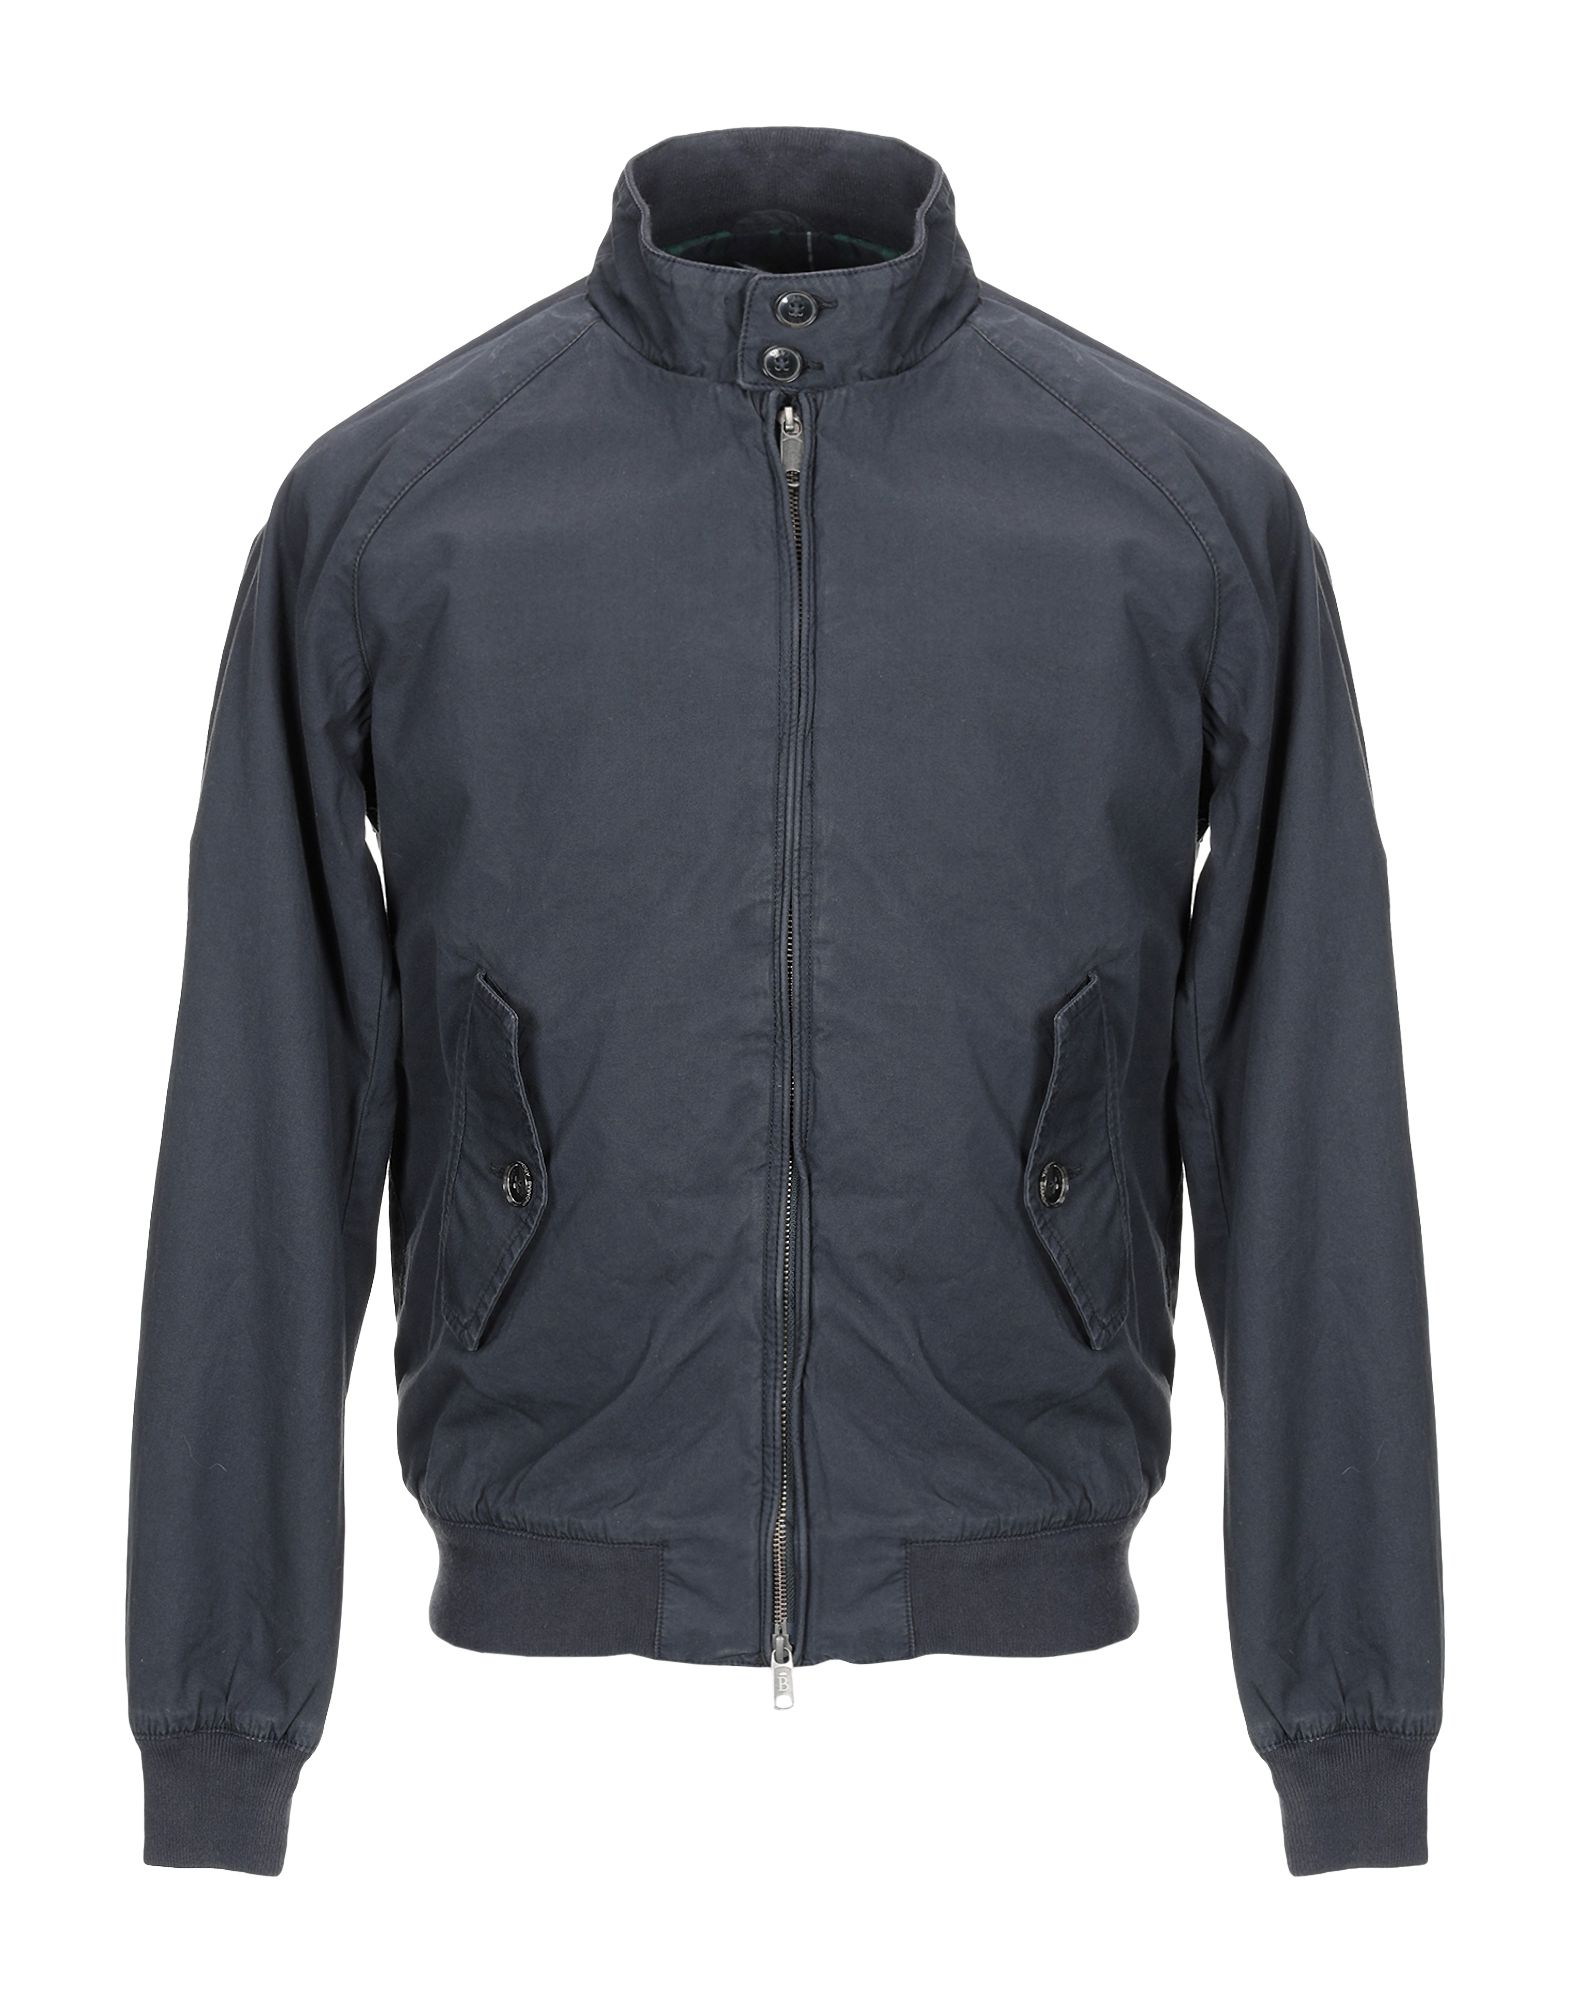 BARACUTA Jackets in Dark Blue